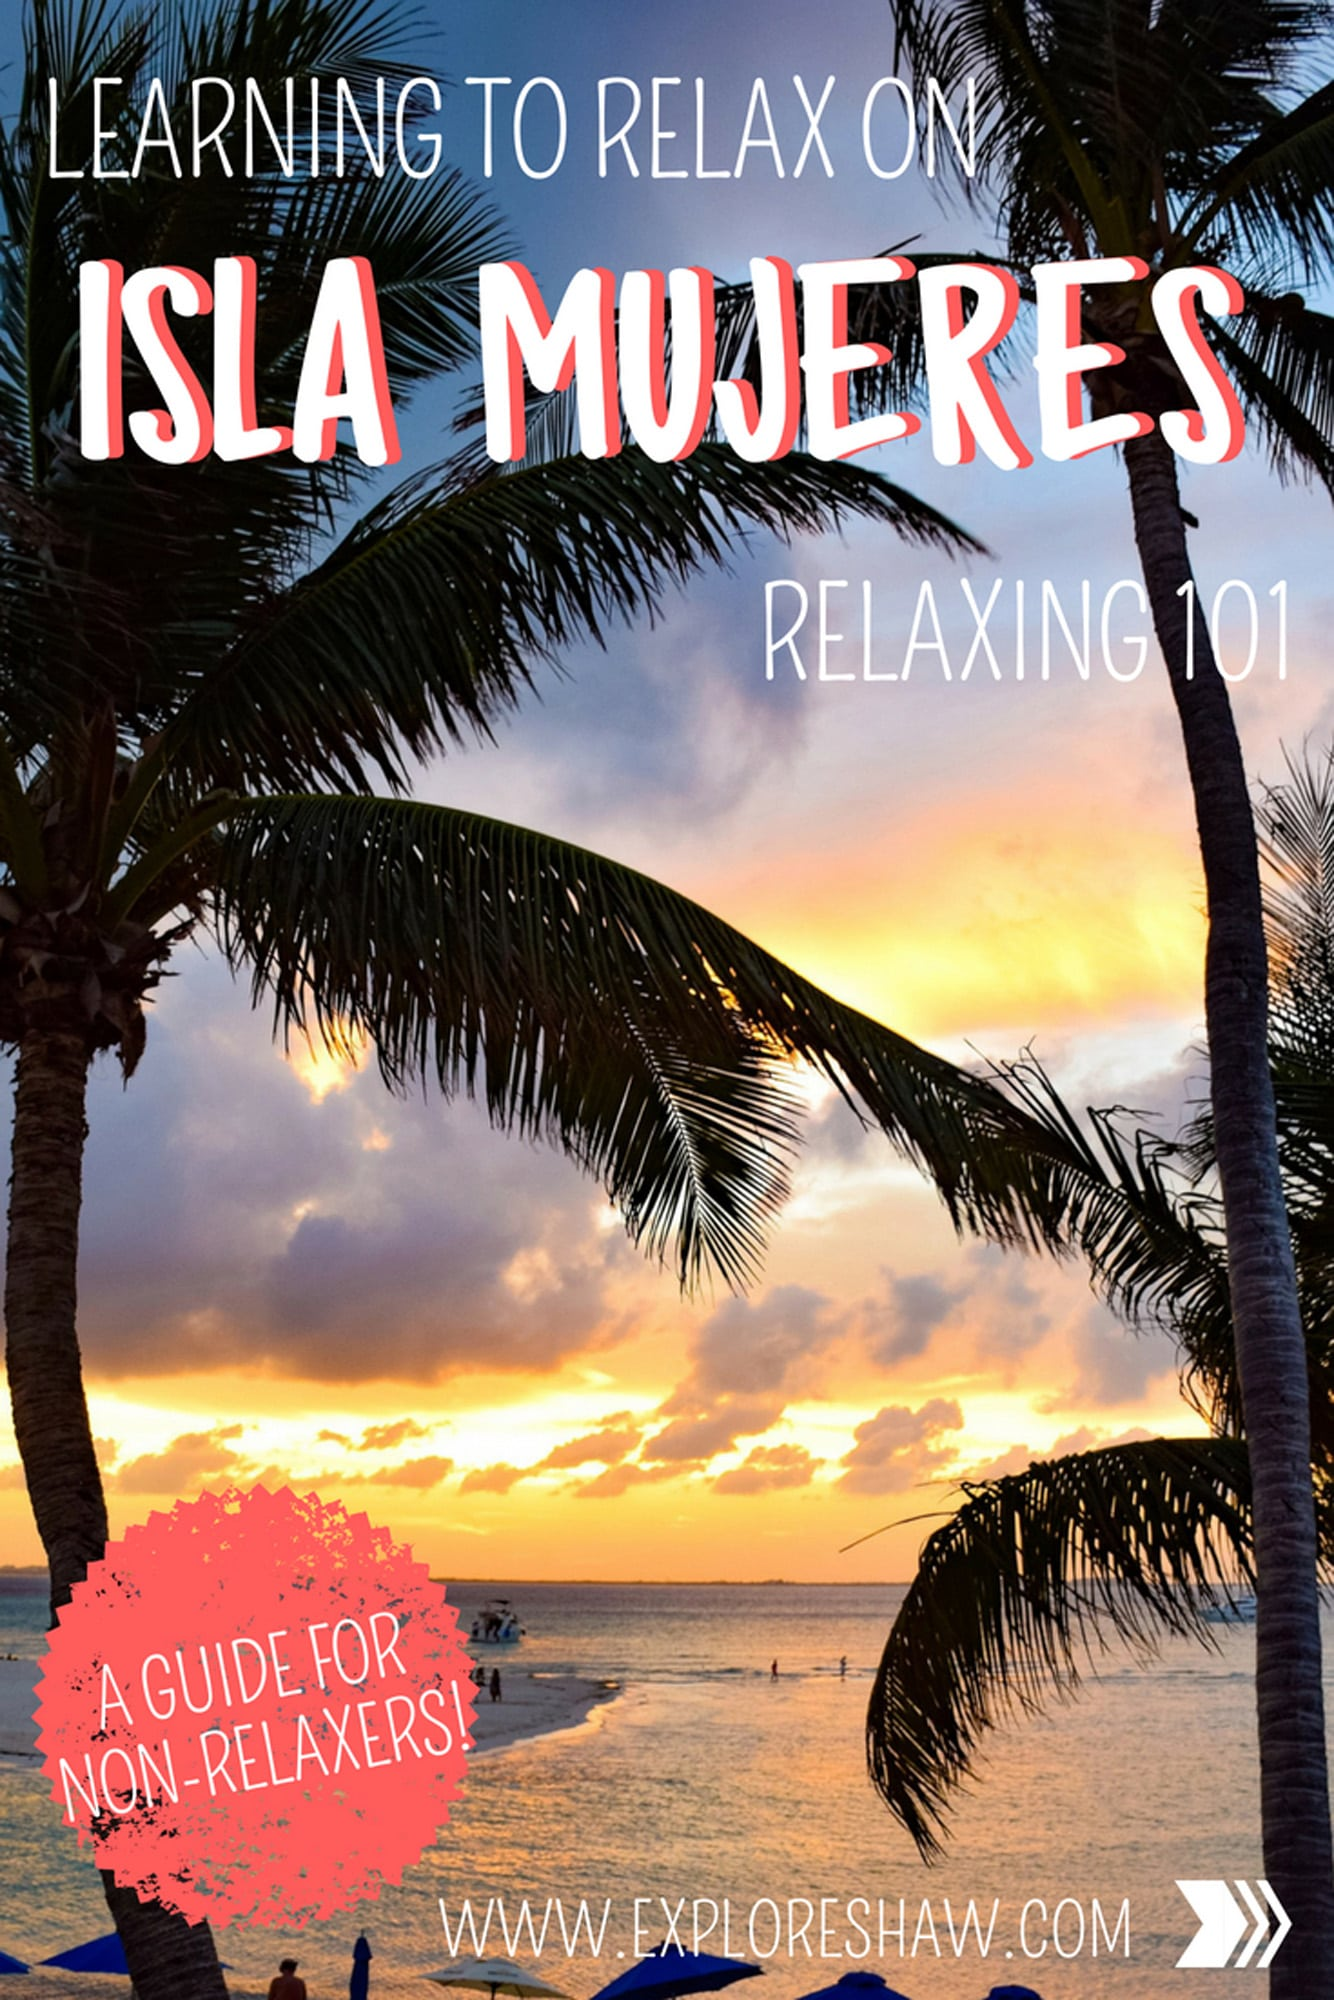 LEARNING TO RELAX ON ISLA MUJERES